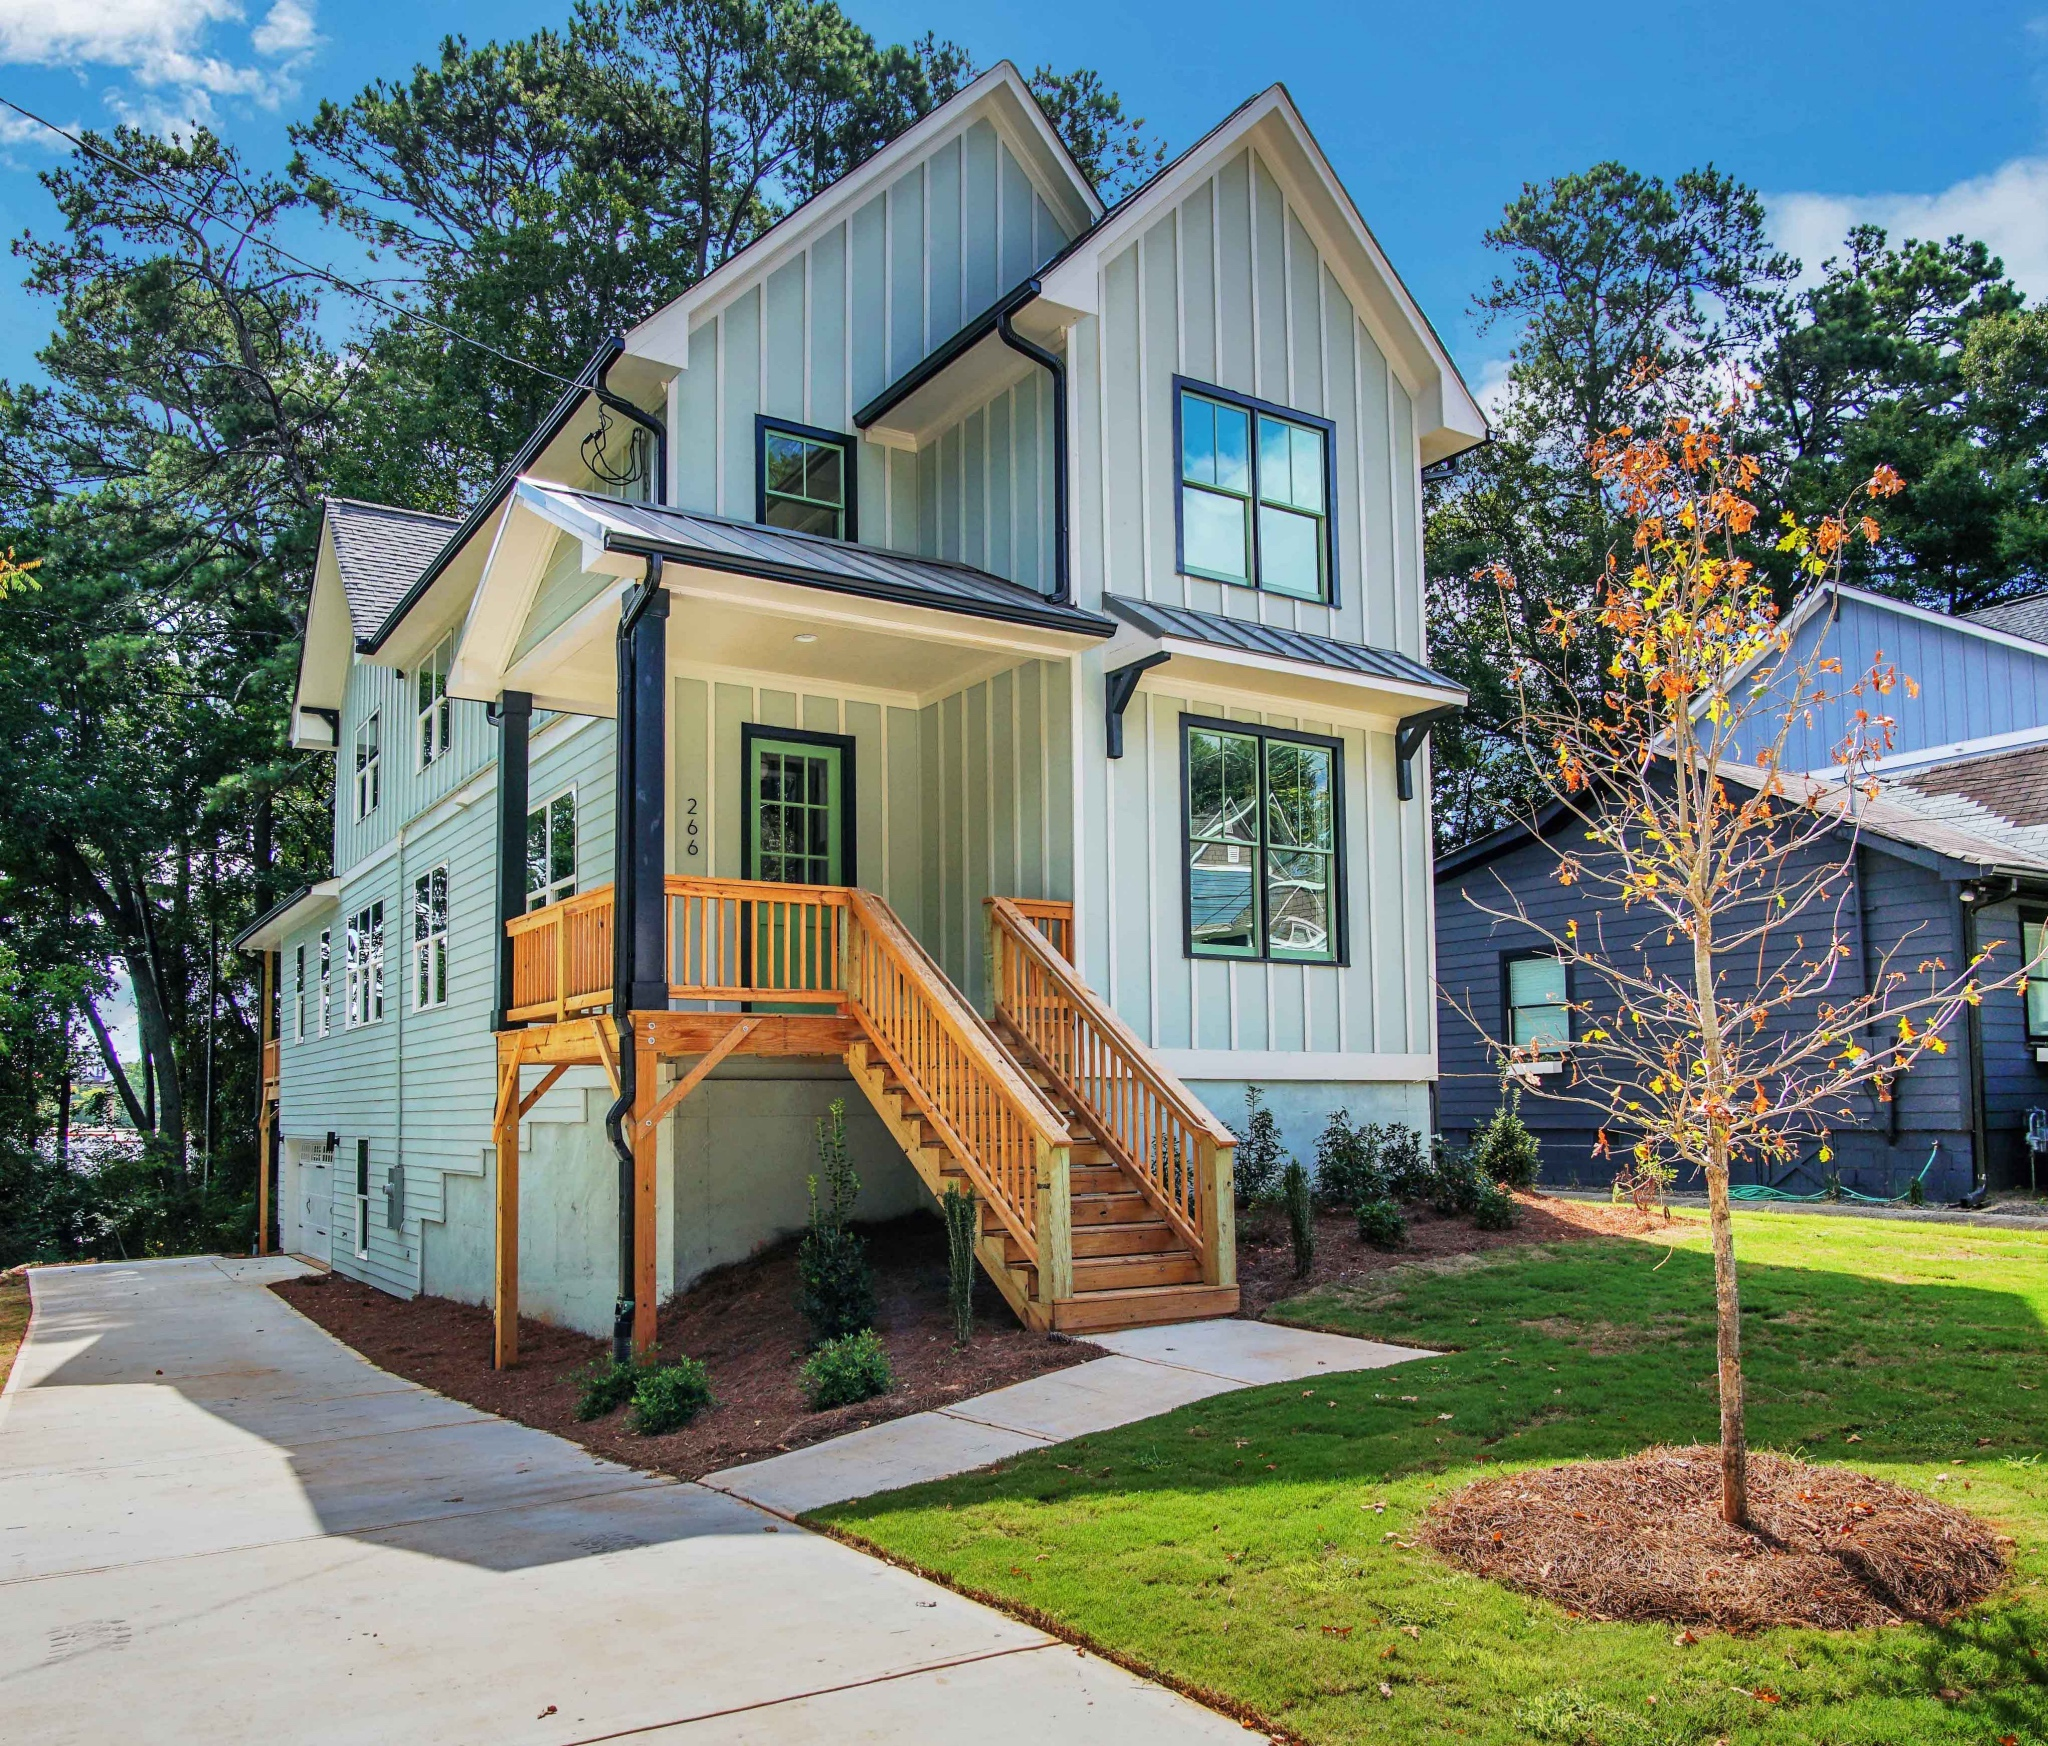 266 Lamon - Custom home by Intown Renewal Developers